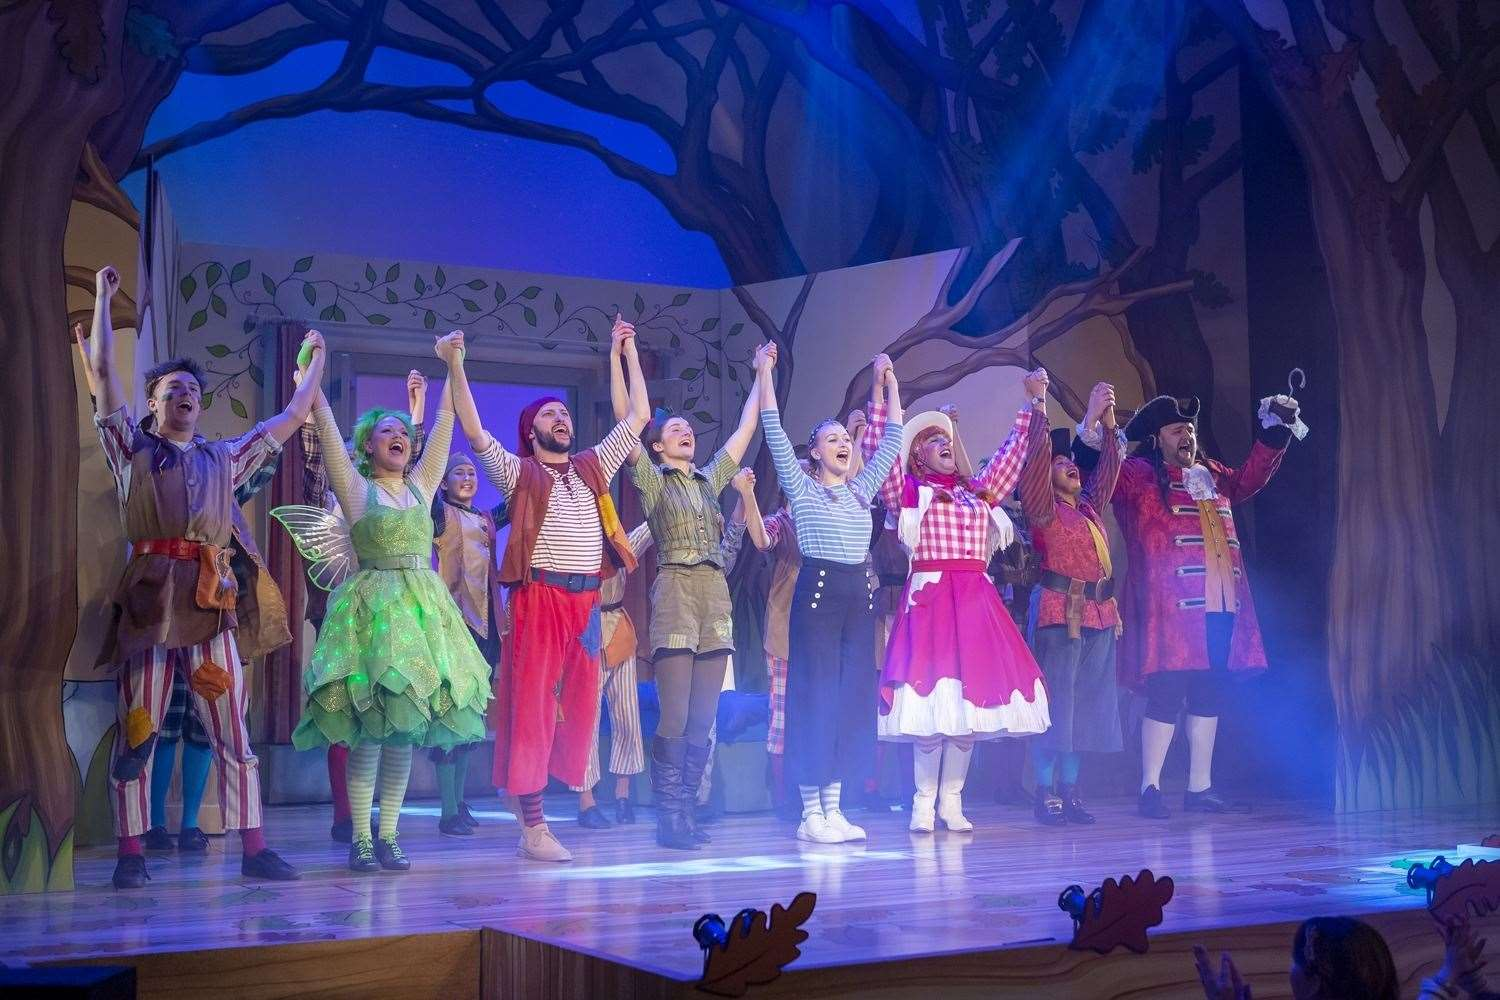 Last year's pantomime Peter Pan at Theatre Royal Bury St Edmunds. Picture by Aaron Weight